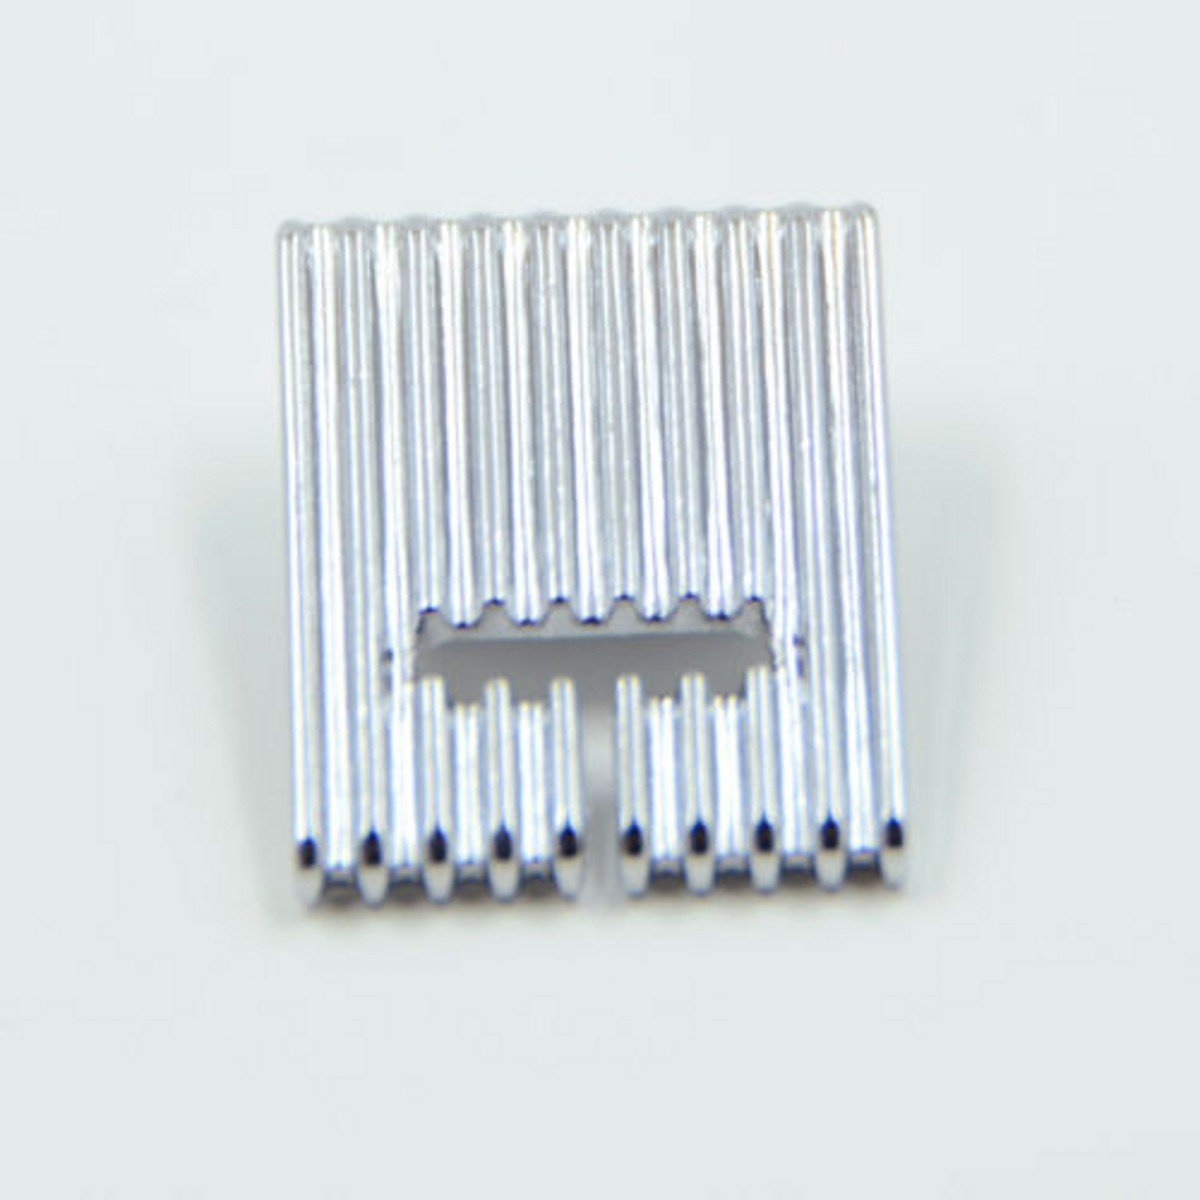 Chengyida 9/ Groove Pintuck piede per Brother//Janome//Singer size 2.0//90/ 3.0//90/ 4.0//90 3pcs double Twin Needle